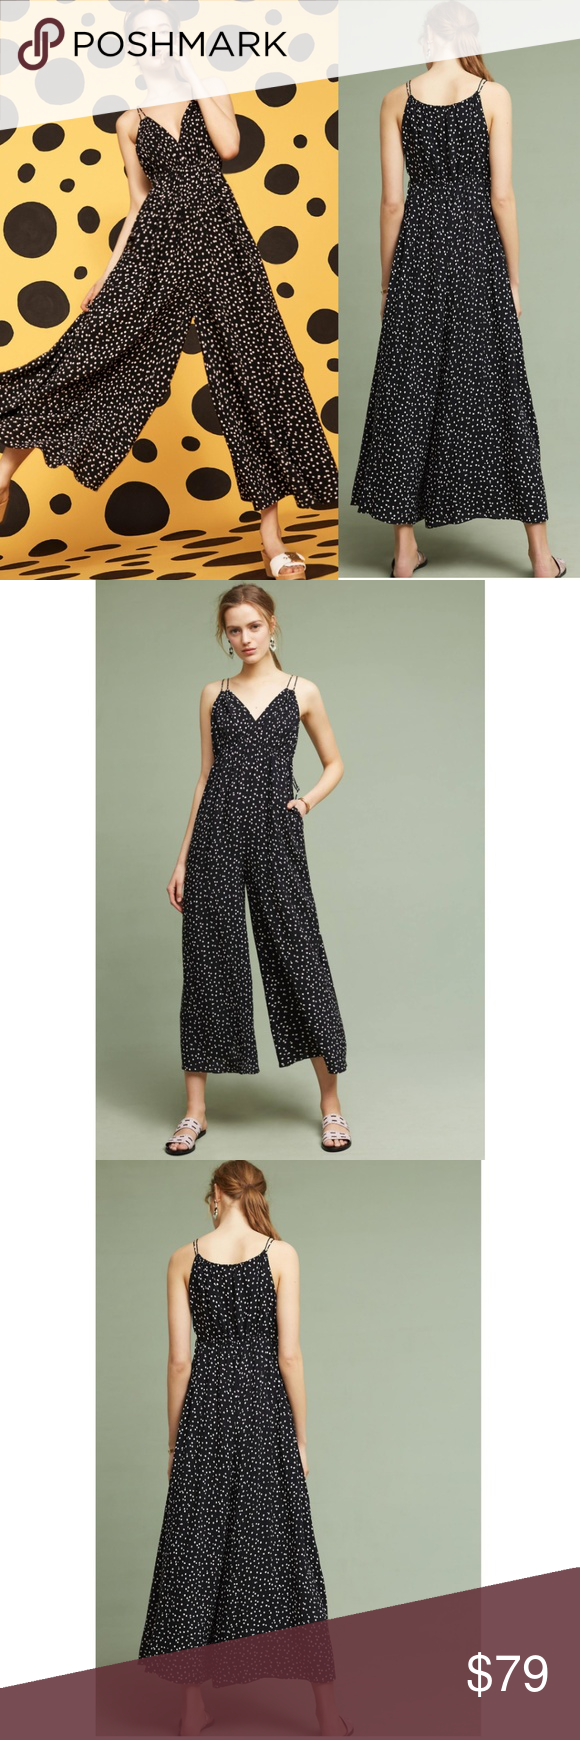 4f40272490 NWT ANTHROPOLOGIE Maeve Finley Polkadot Jumpsuit